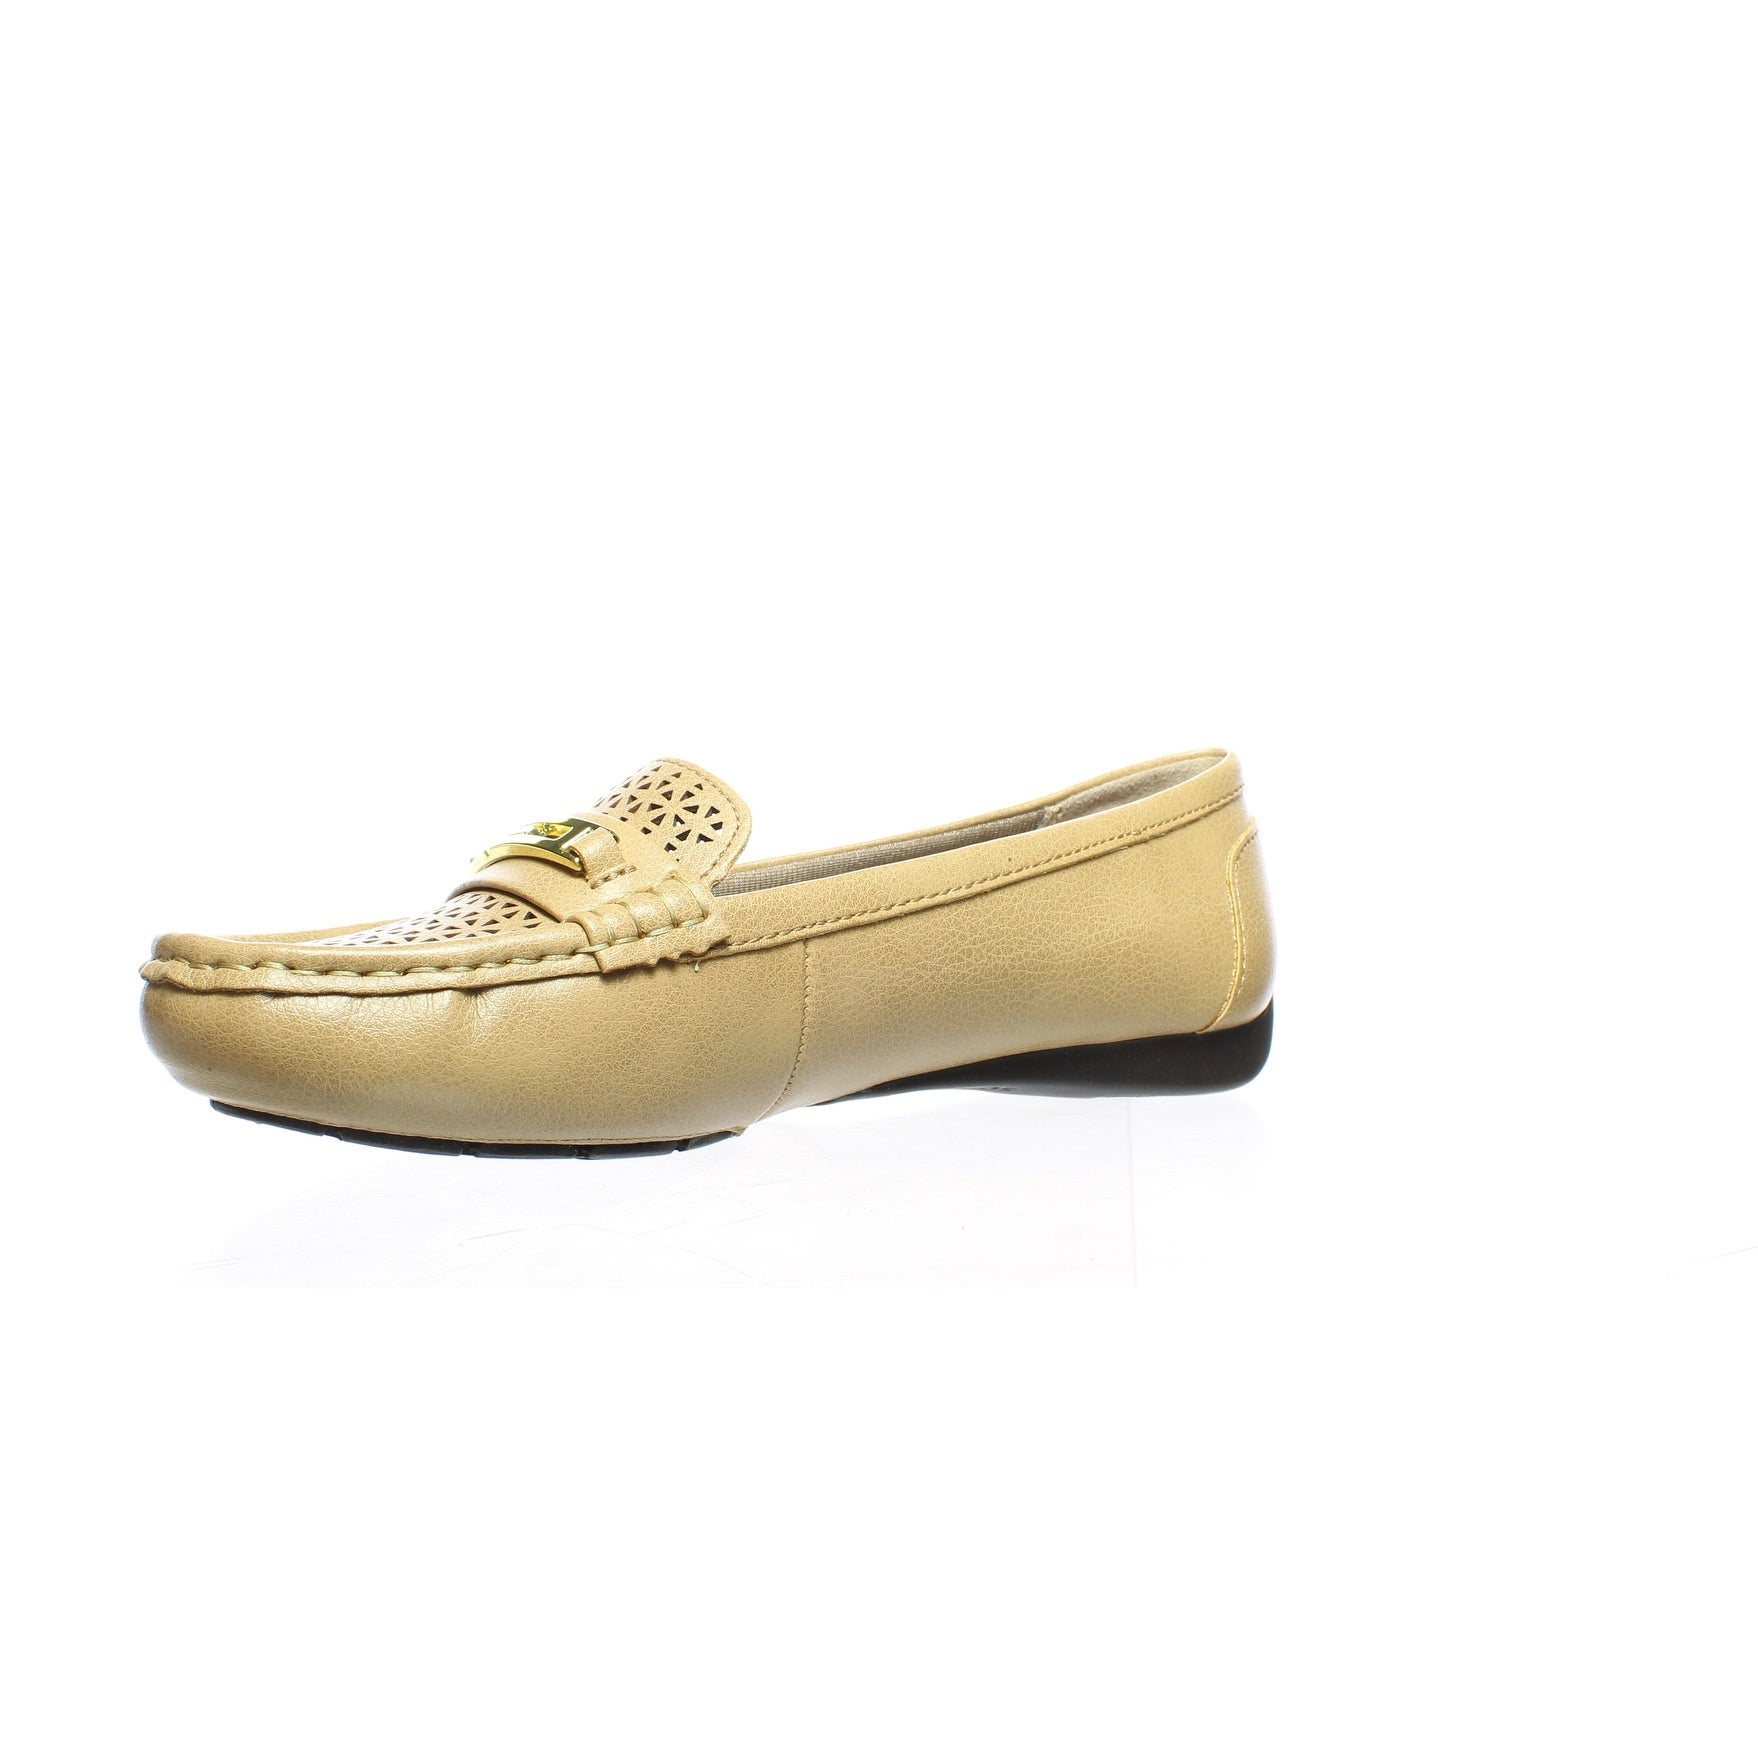 f96b94b9e7a Shop LifeStride Womens Viva 2 Sand Loafers Size 7 - Free Shipping Today -  Overstock - 27993030